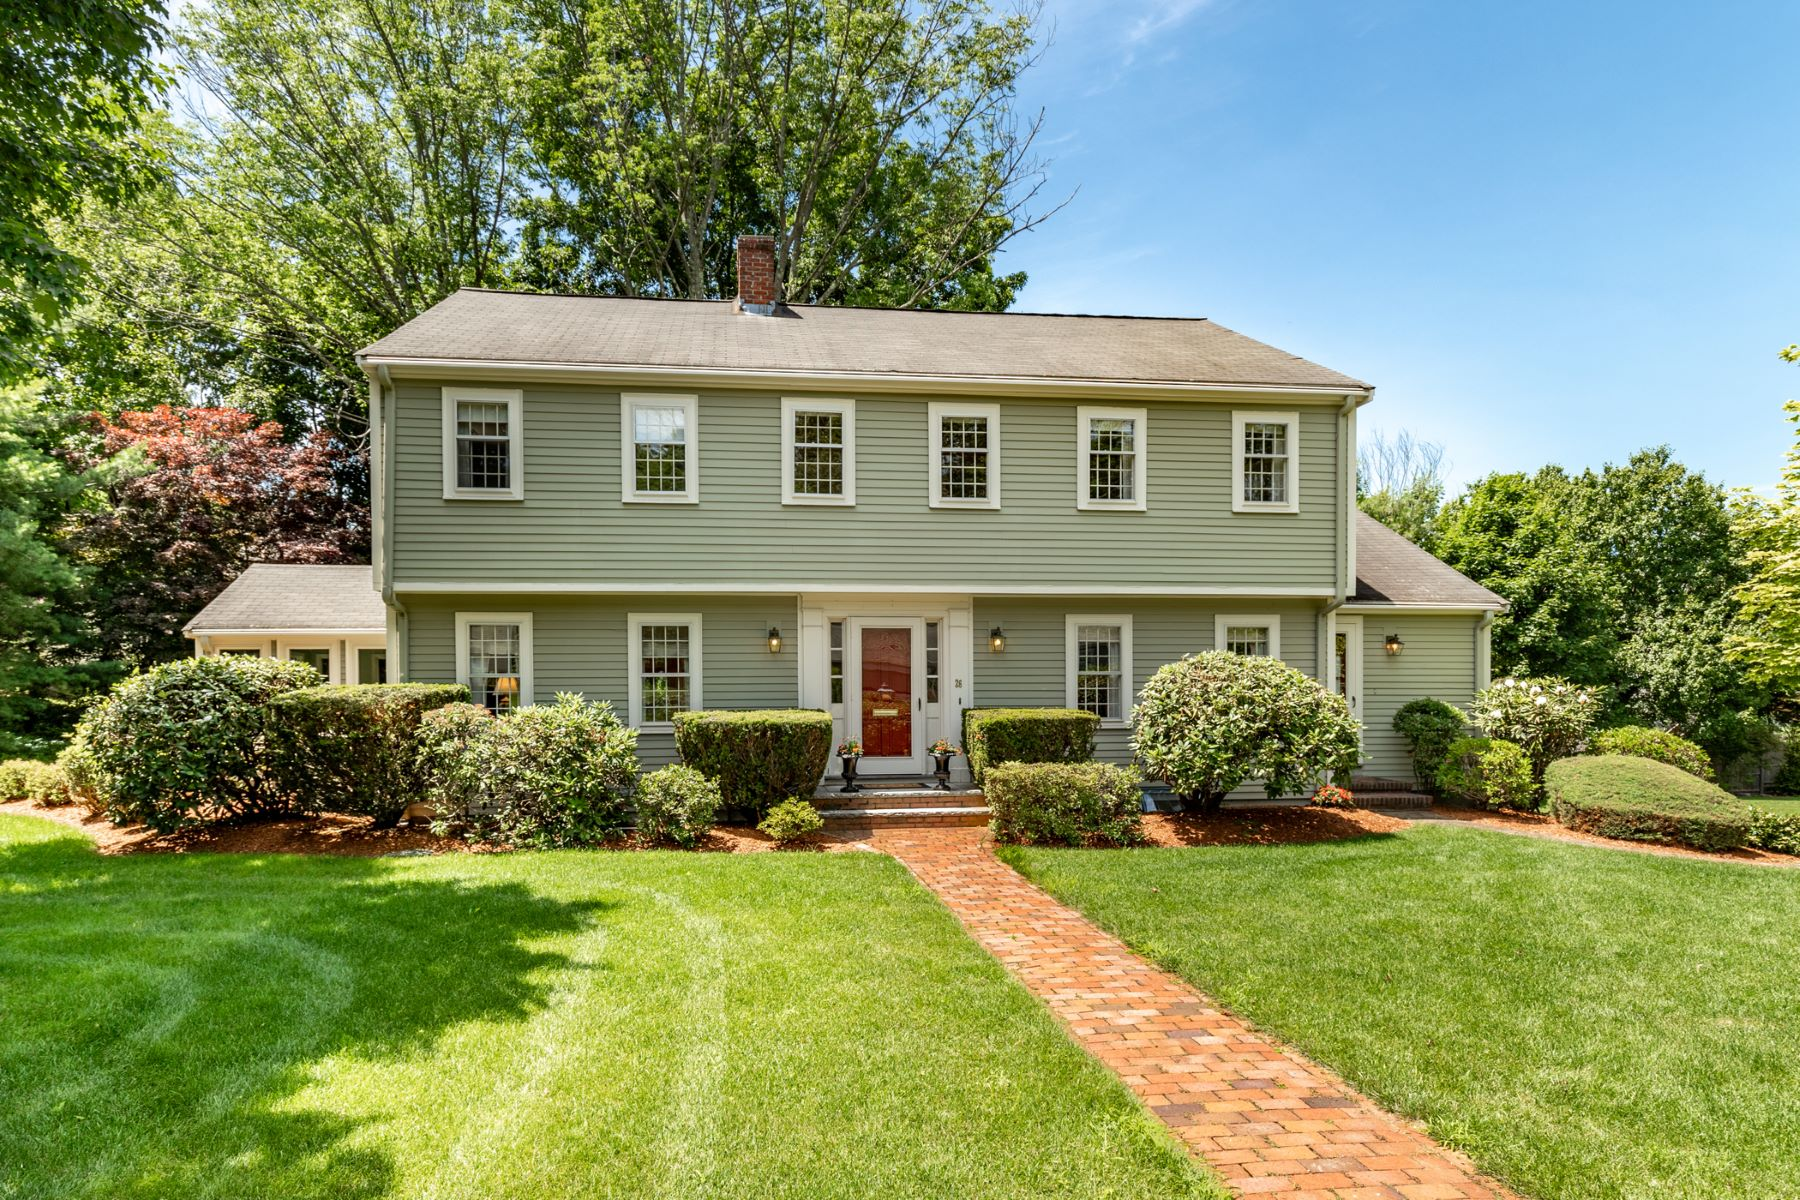 Single Family Homes for Sale at 26 Nickerson Road, Lexington 26 Nickerson Rd Lexington, Massachusetts 02421 United States